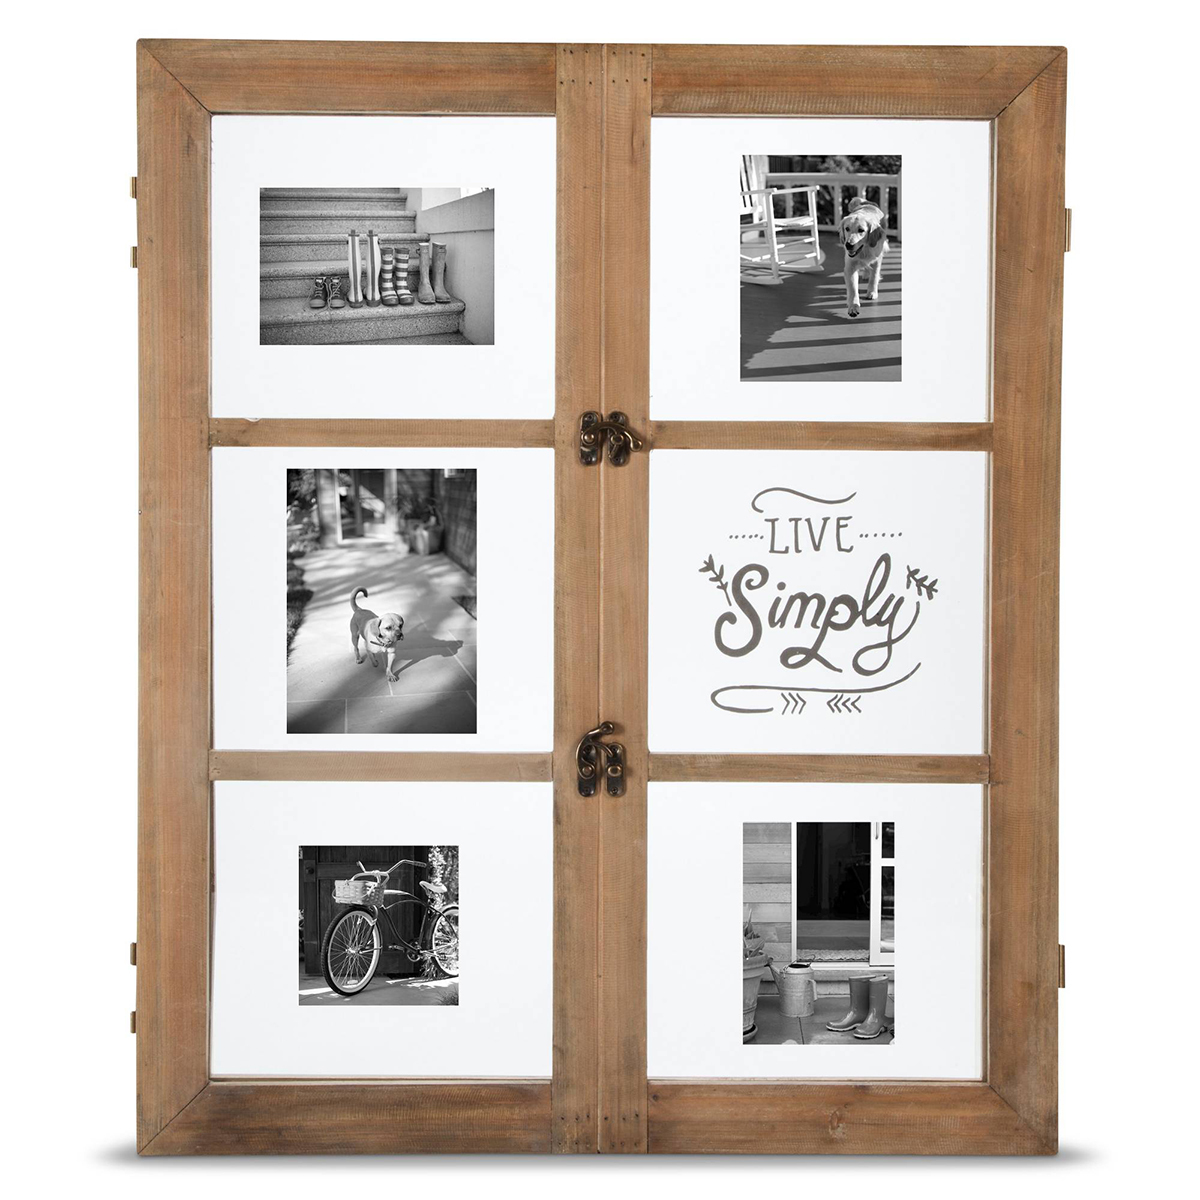 We're in a Rustic Frame of Mind photo